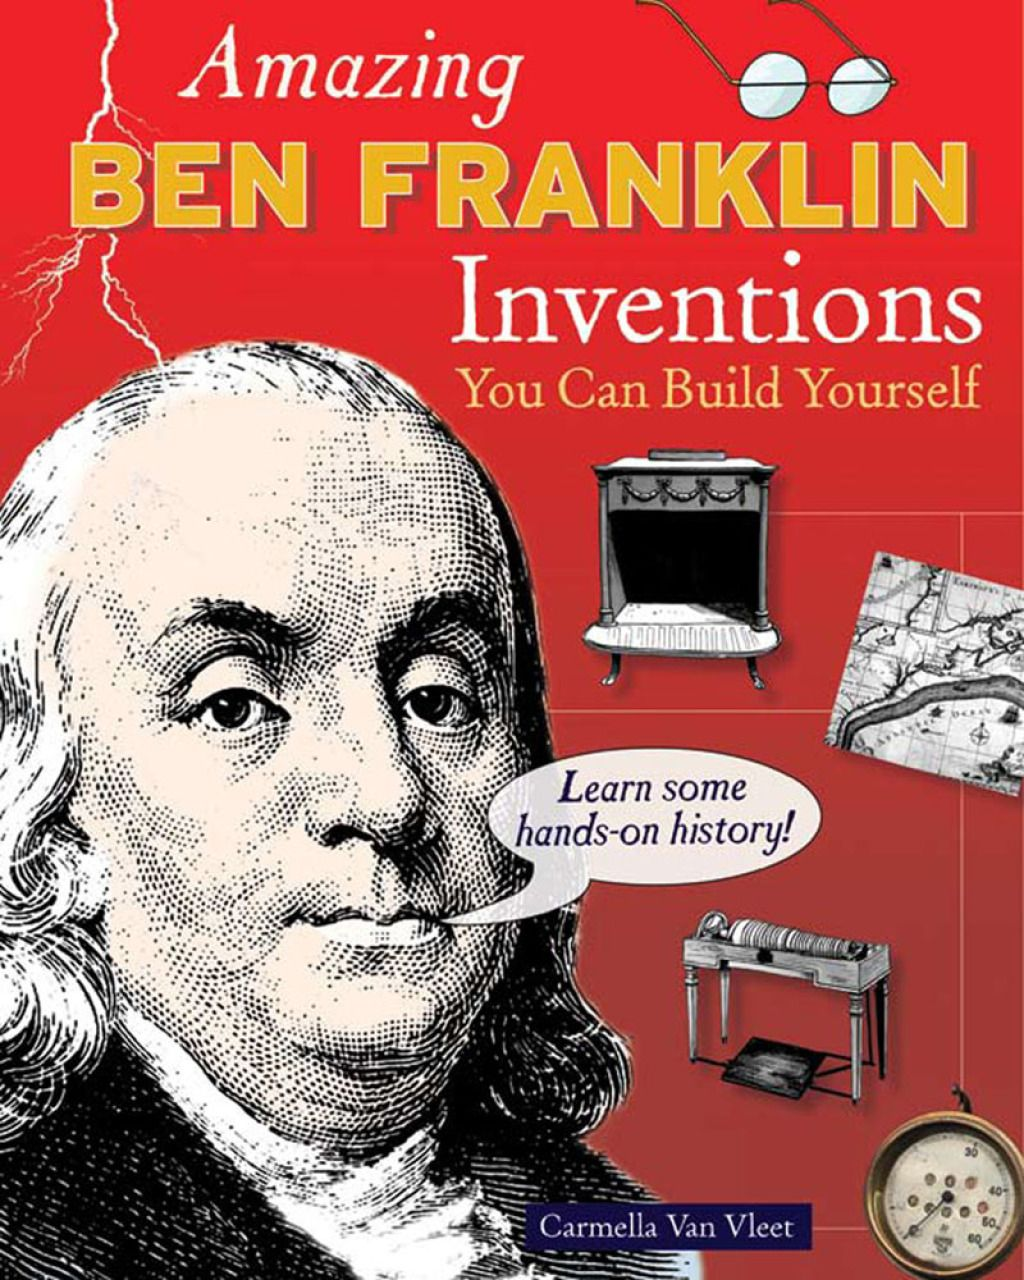 Amazing Ben Franklin Inventions Ebook